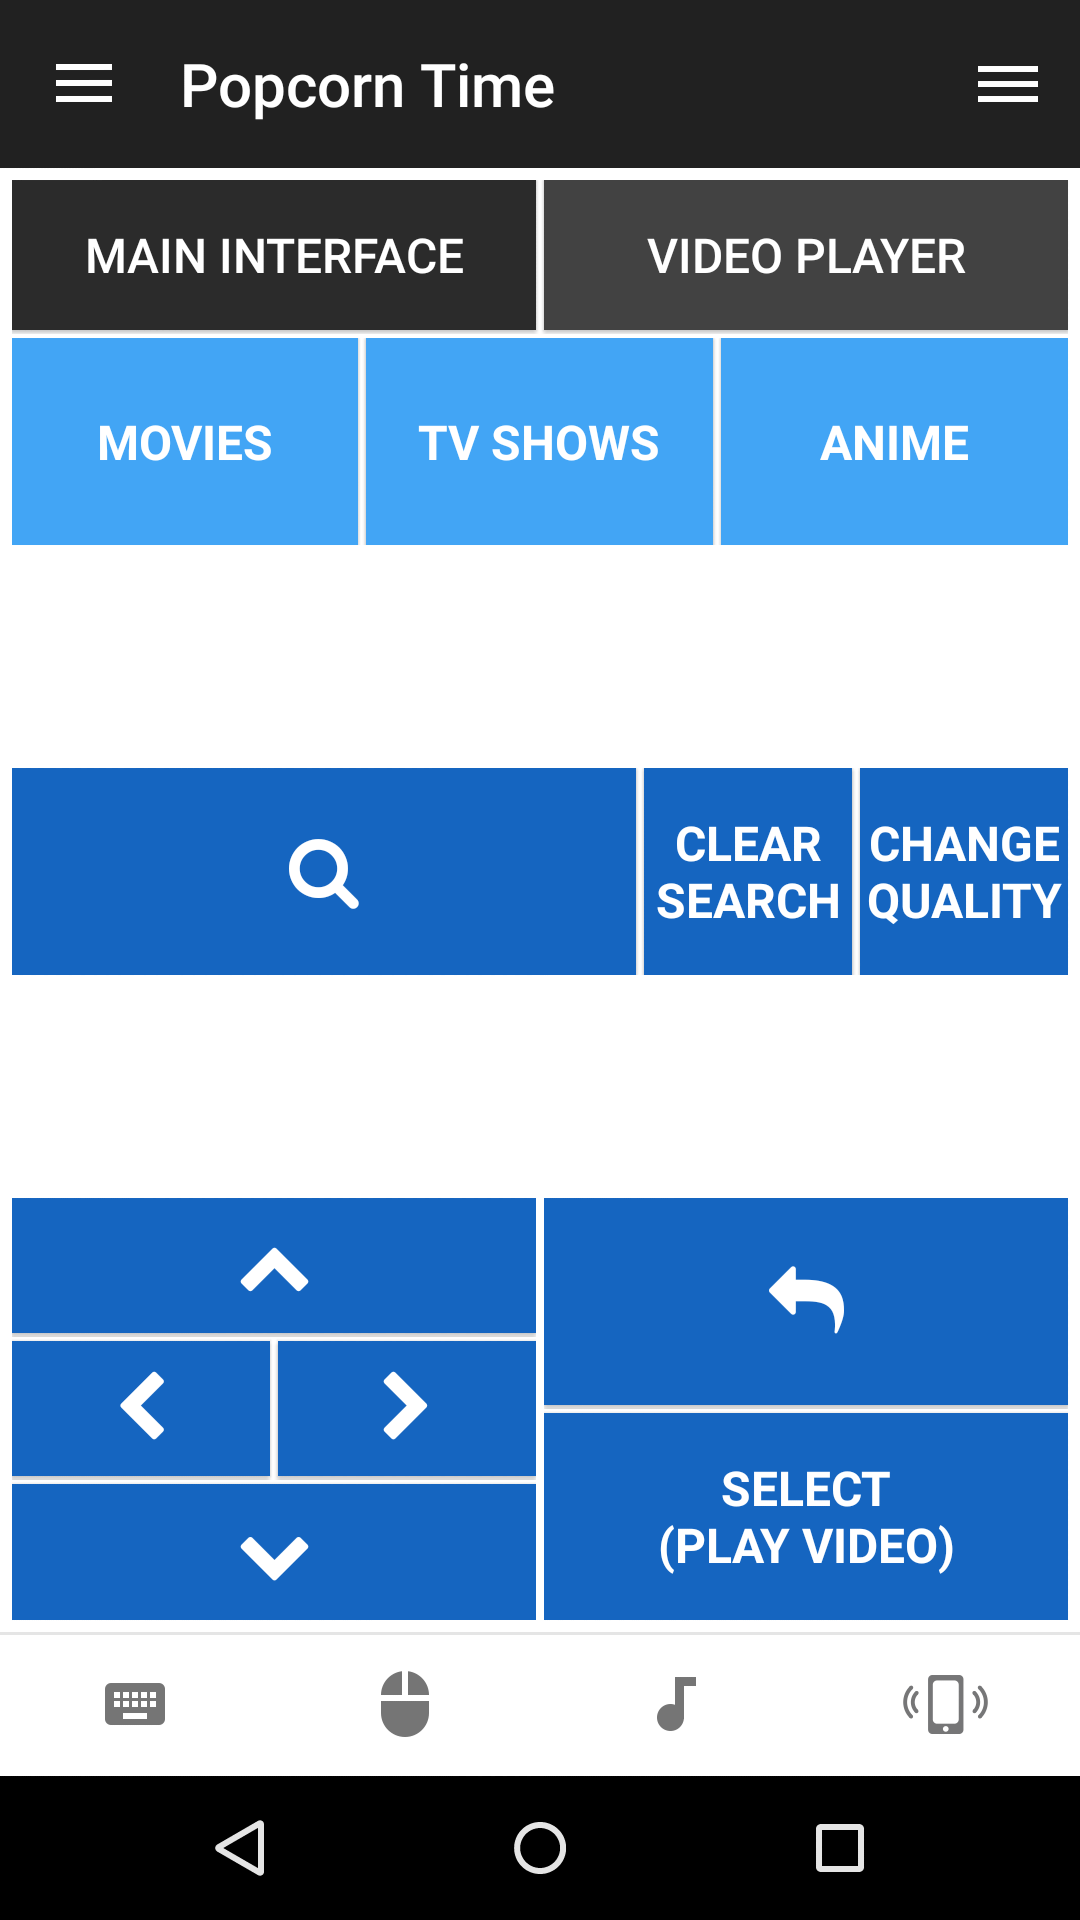 Main interface interface of PopcornTime remote